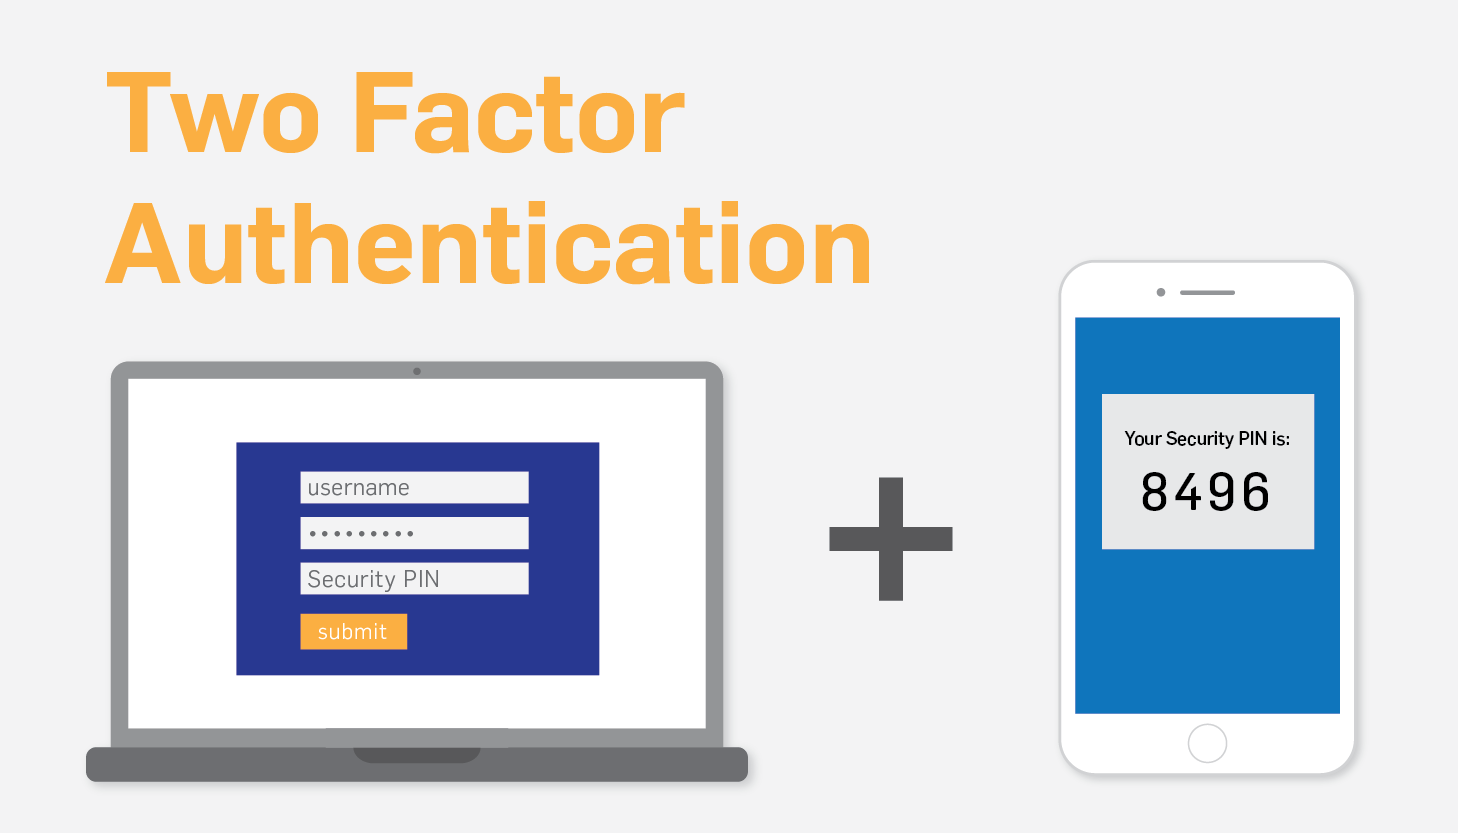 An example of how multi-factor authentication works to keep your accounts secure.